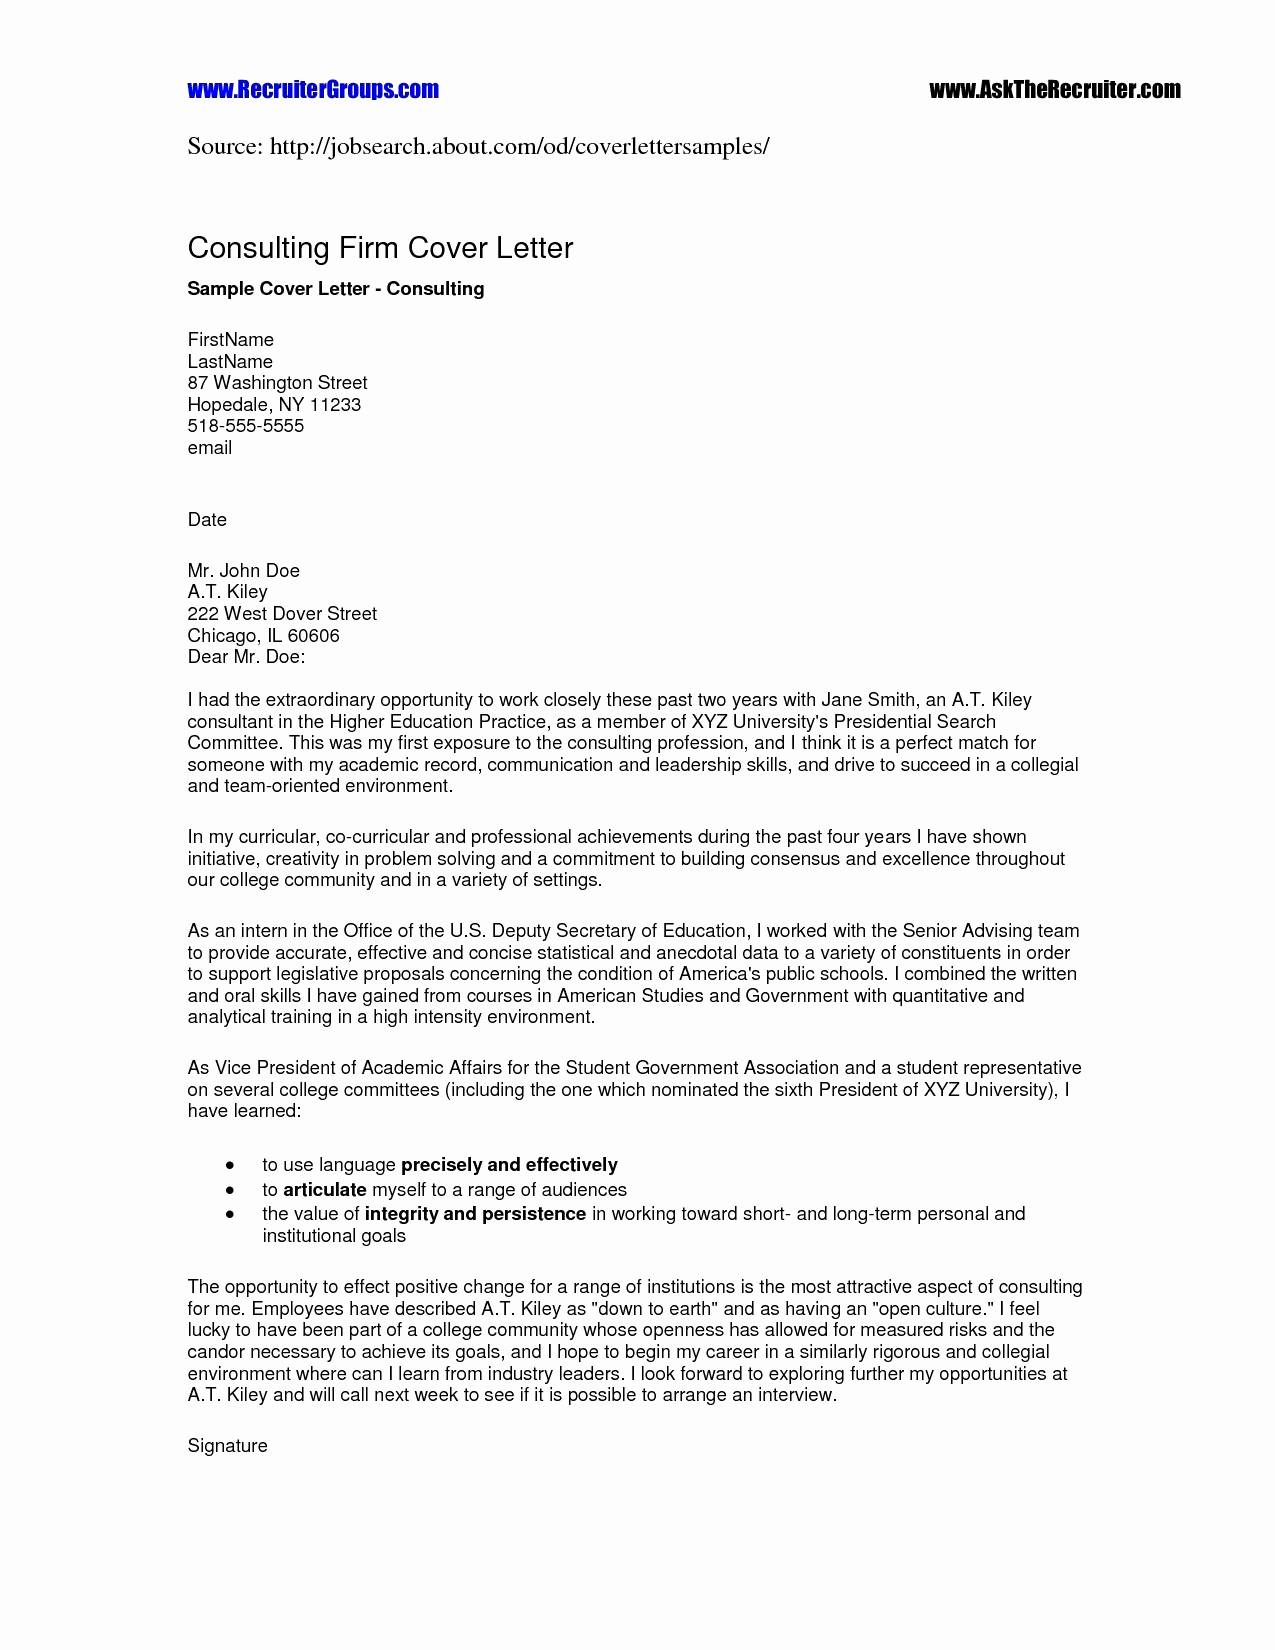 Cease and Desist Collection Letter Template - Cease and Desist Letter Template for Debt Collectors Fresh 20 Debt